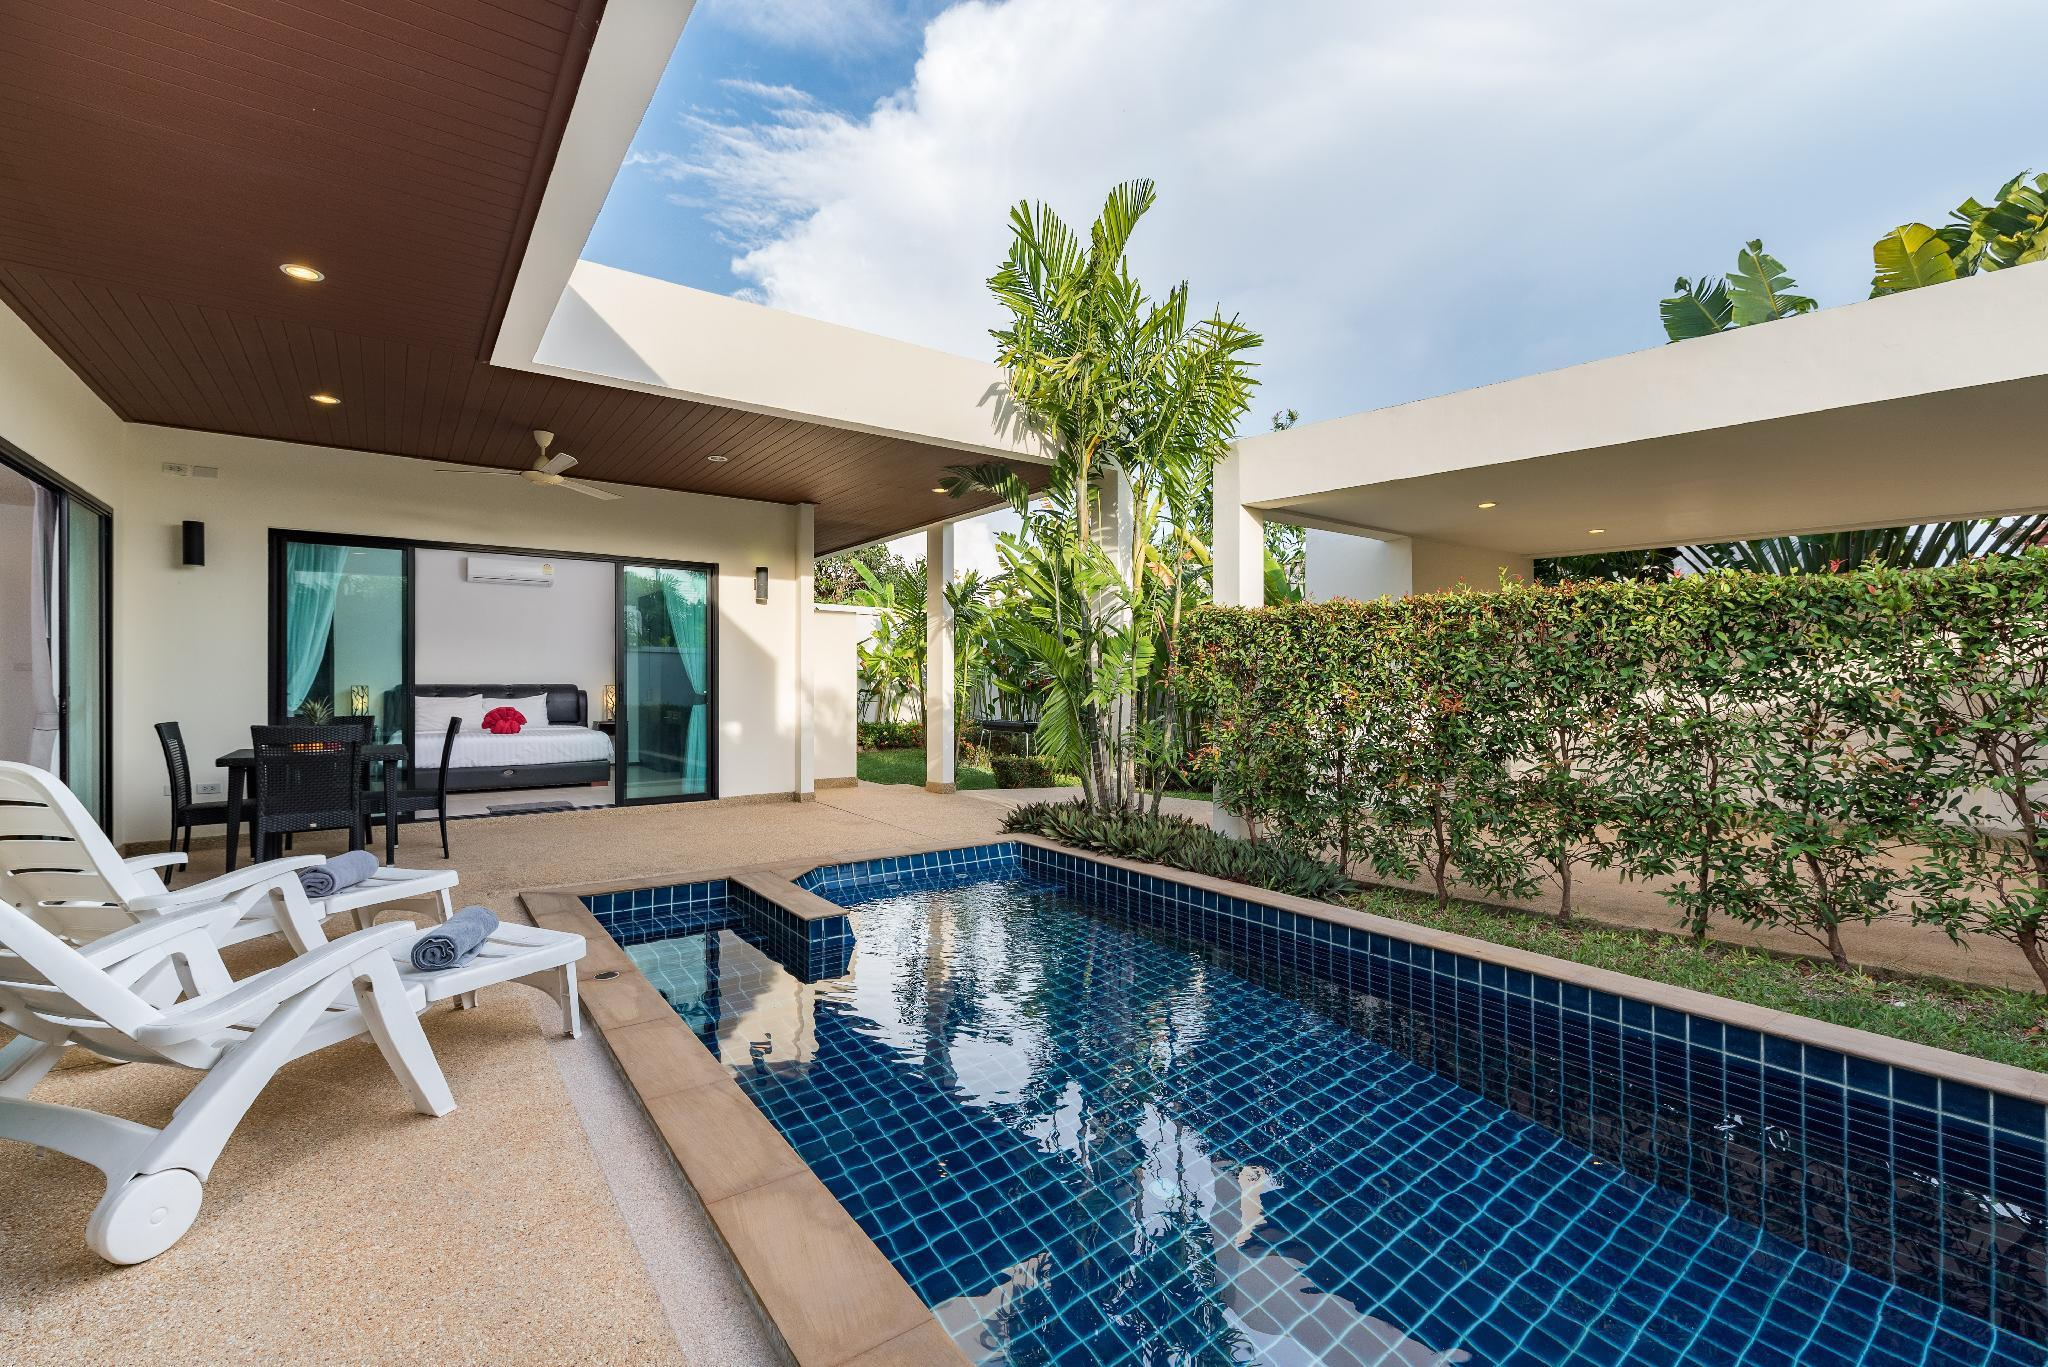 Tropical 3br Boutique Pool Villa by Intira Villas Tropical 3br Boutique Pool Villa by Intira Villas